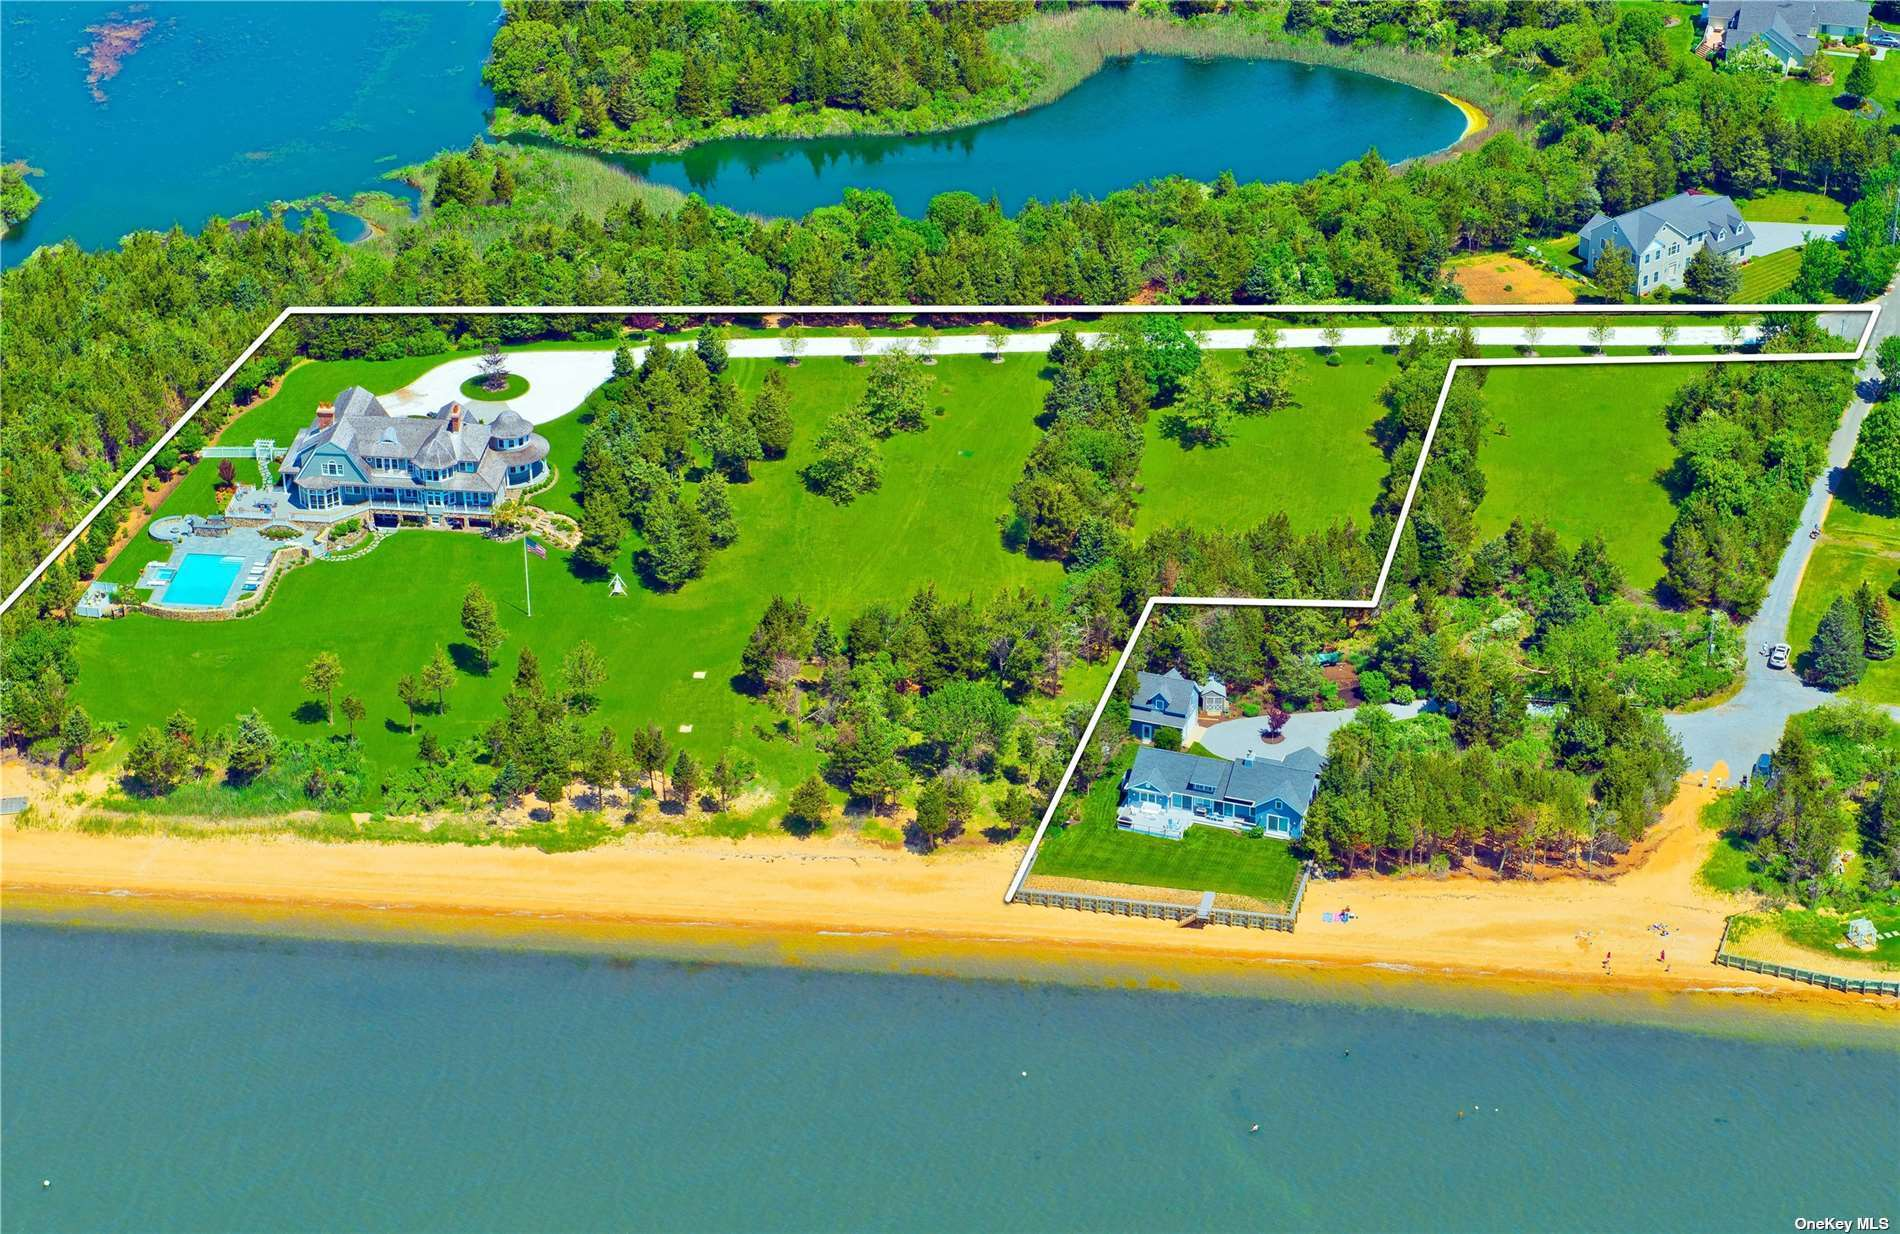 """""""The Esplanade"""", a spectacular Nantucket Style 5-bedroom Bayfront Estate located on the west side of the Bayview Peninsula in Southold, a desirable North Fork location. Surrounded by water and preserved land, this home is custom designed. Recognizing the rarity of this special location the owners of the property accumulated adjoining Bayfront lots over twenty years, creating this private estate and, simultaneously, an exceptional investment opportunity for the future. Three single and separate Bayfront lots make up """"The Esplanade"""" totaling just shy 5 acres, with 400'+ frontage on Peconic Bay. Generous entry, gourmet kitchen designed by Clive Christensen, Waterworks faucets and LeFroy-Brooks shower systems in 4 ensuites, built in Sonos sound systems, butlers pantry with Miele oven, microwave and steam system, 2 sub-zero refrigerator/freeze with wine cabinet. Bluestone deck with mahogany railing overlooks the sprawling lawn to the water's edge with expansive views of Peconic Bay."""